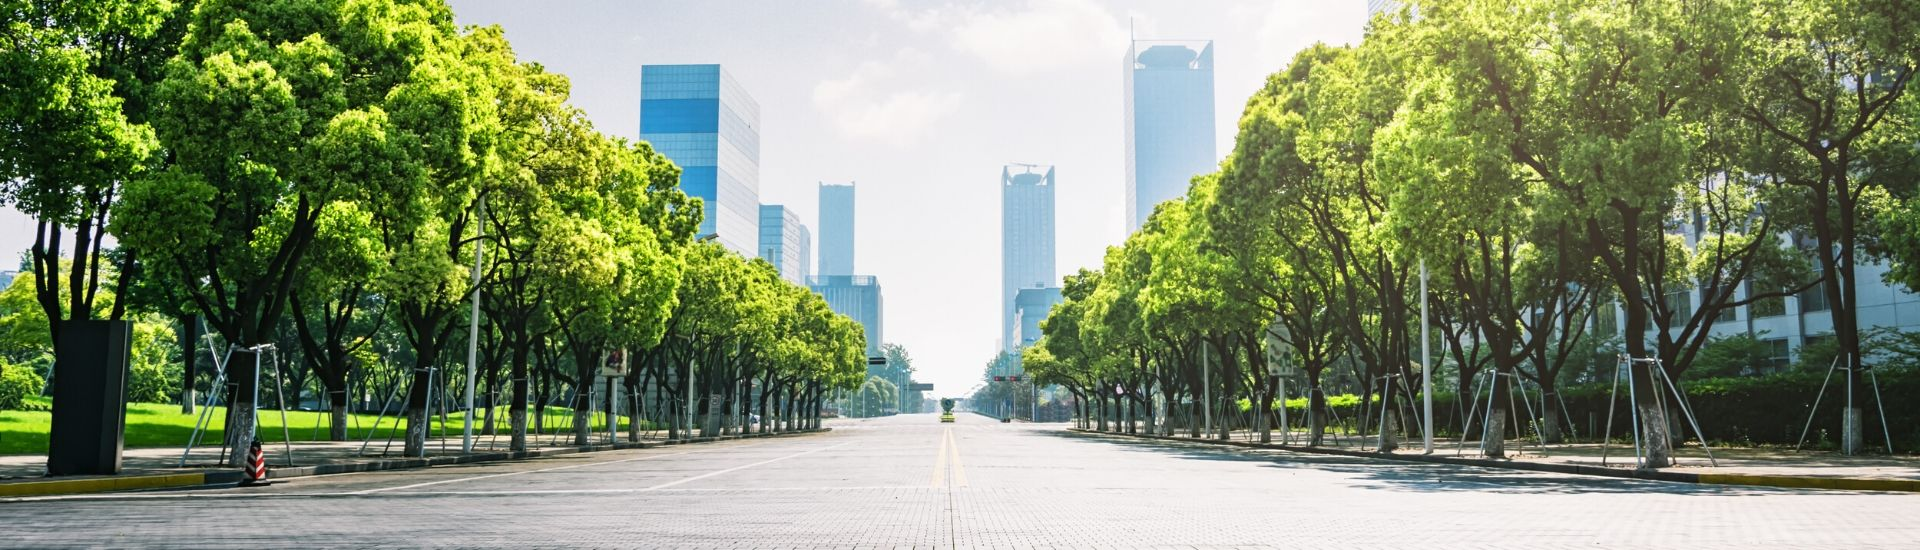 Tree lined paver road with sky scraper buildings in the background.